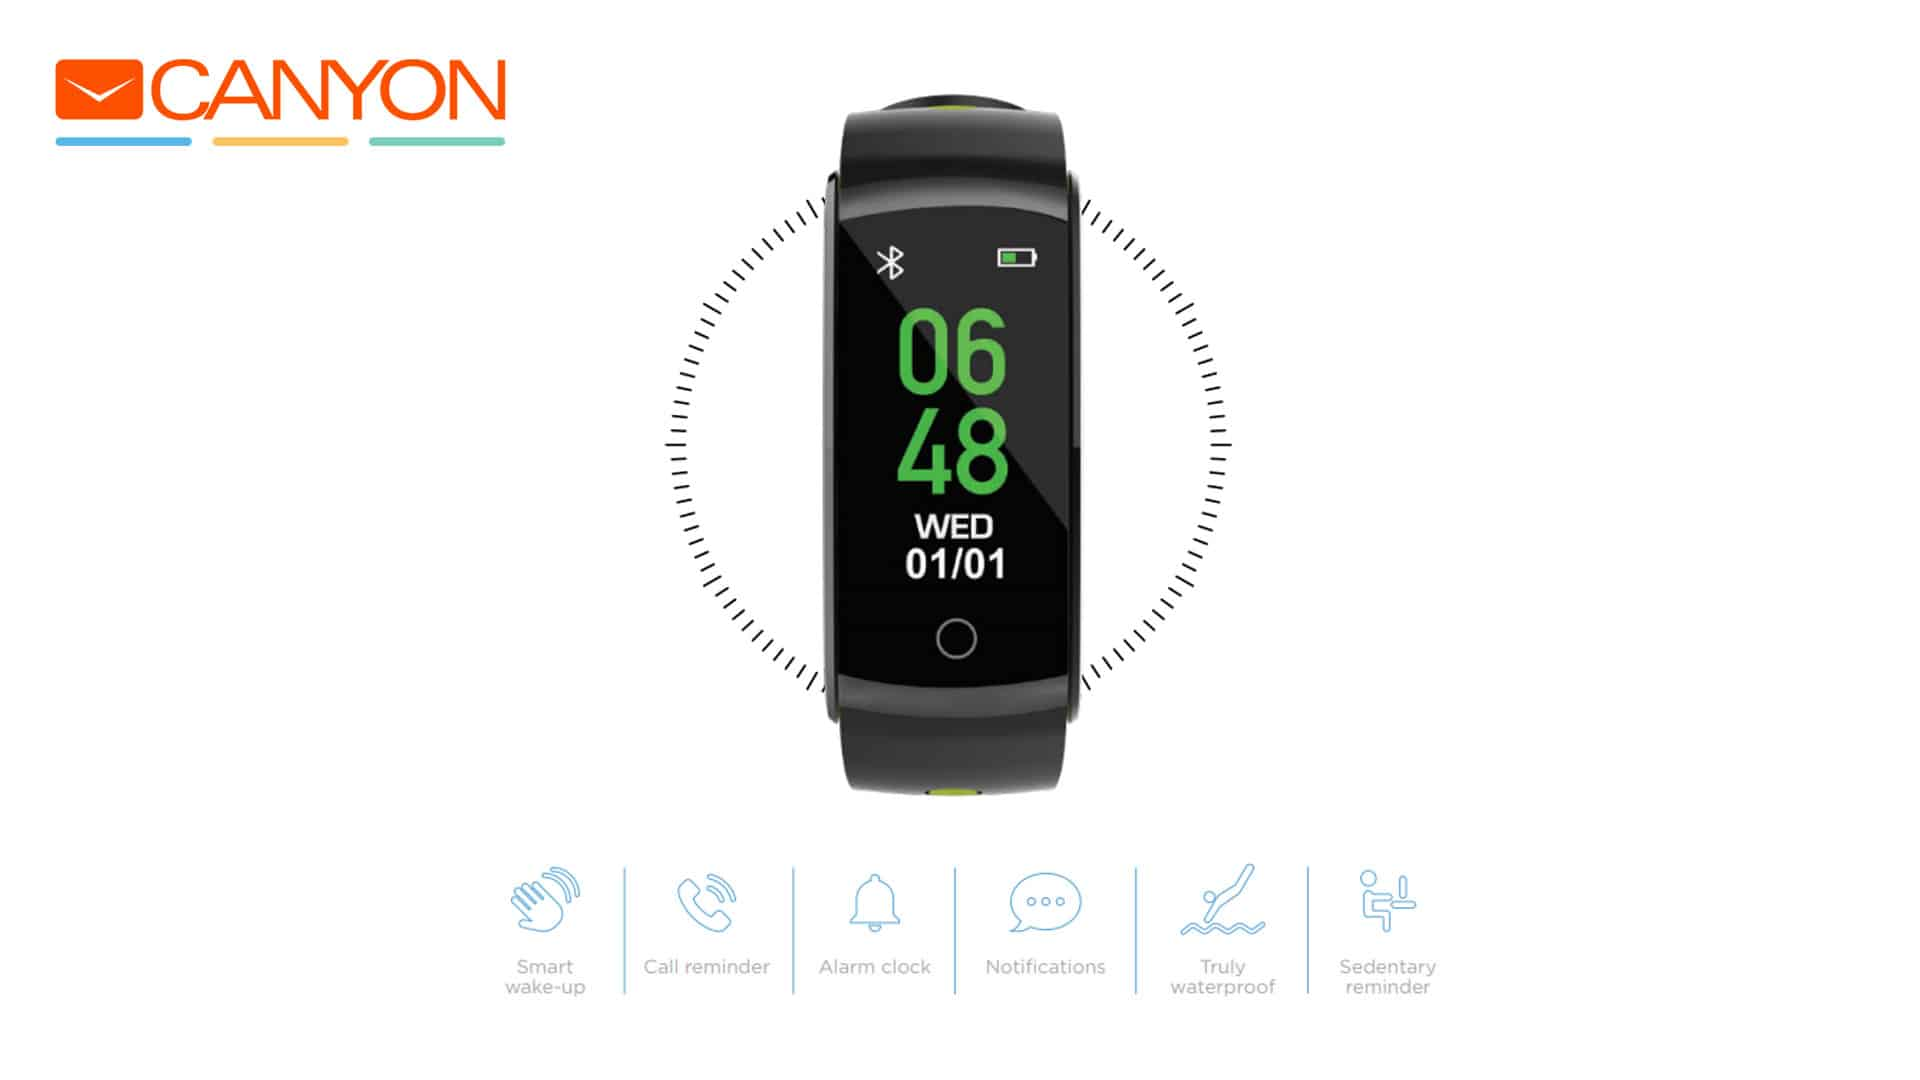 Canyon Colourful Fitness Band For Sports Fans Black & Green